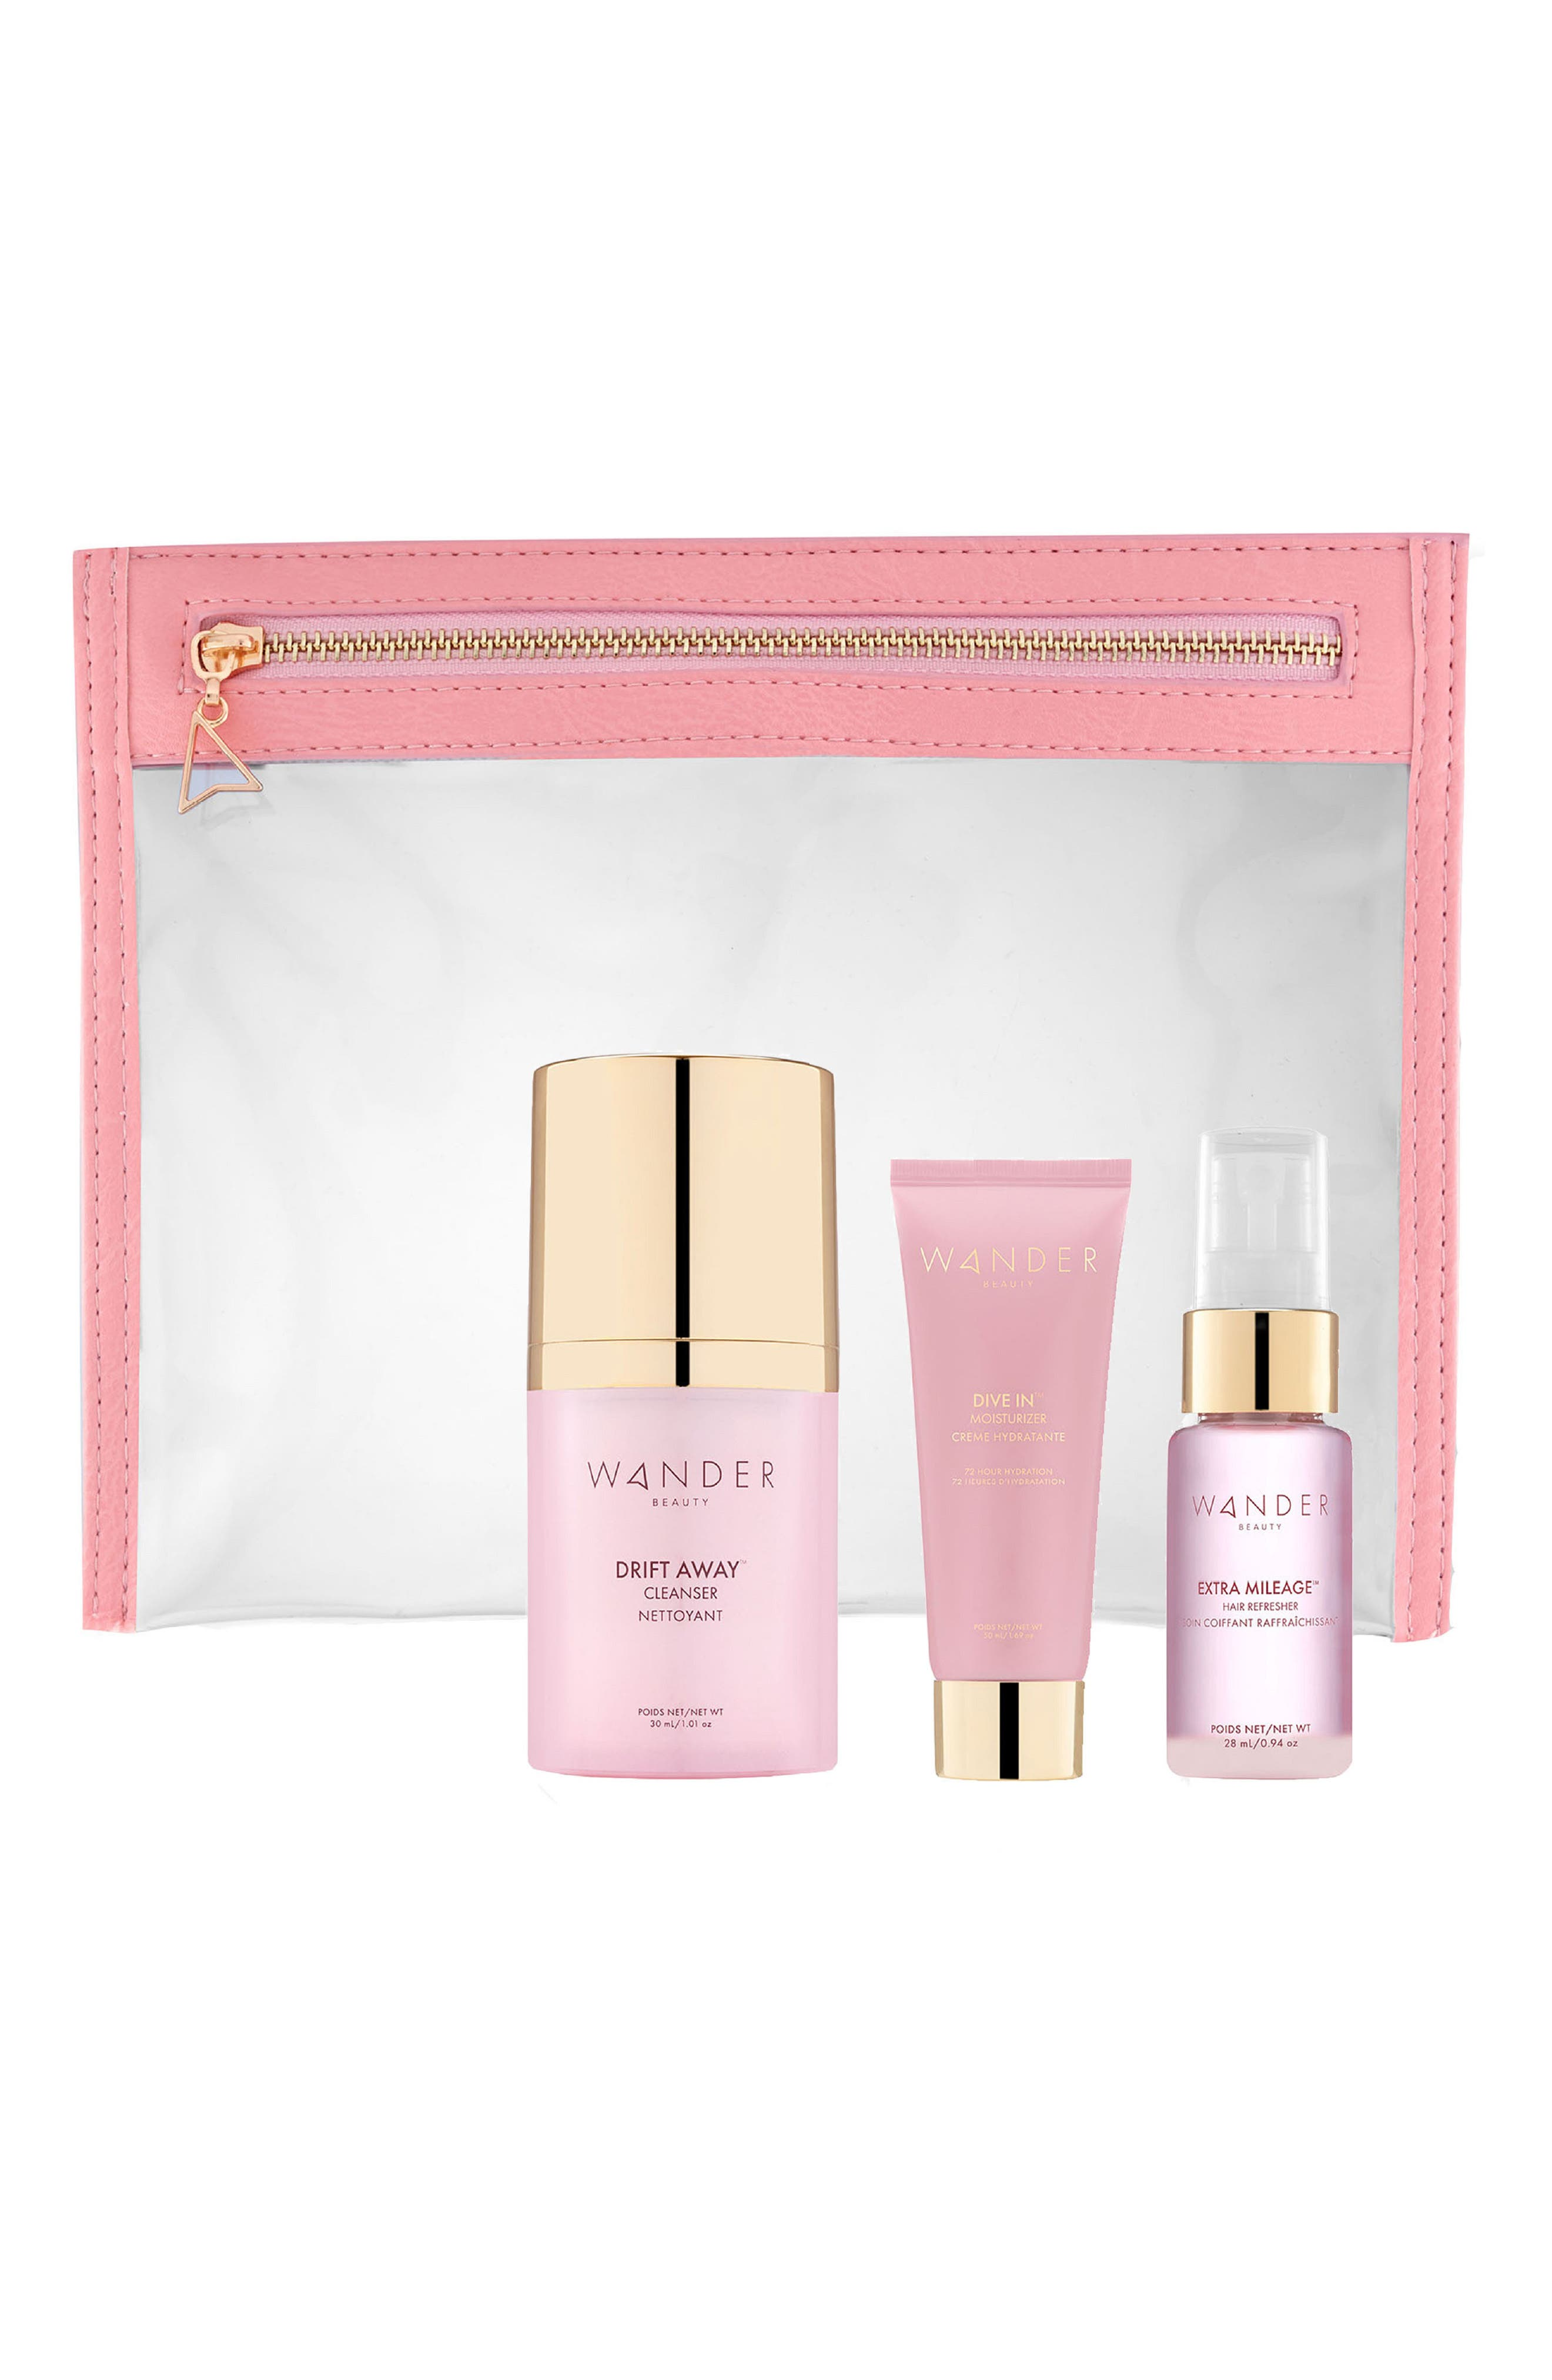 What it is: A set of hydrating beauty essentials that will revitalize your look and feel on even the busiest days. Set includes:- Mini Drift Away Cleanser (1.01 oz.): a gel-to-foam, deep facial cleanser with a blend of vitamin-rich extracts and powerful sea ingredients to melt away all impurities without drying the skin- Mini Dive In Moisturizer: a lightweight moisturizer that sinks into the skin and is enriched with Pentavitin and a multitude